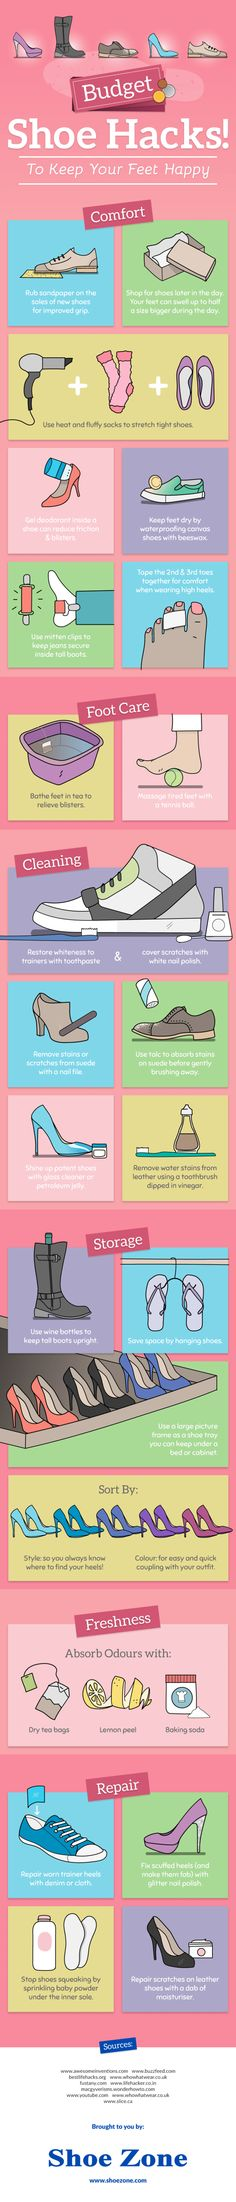 These Shoe Hacks Will Make Your Footwear Last Longer